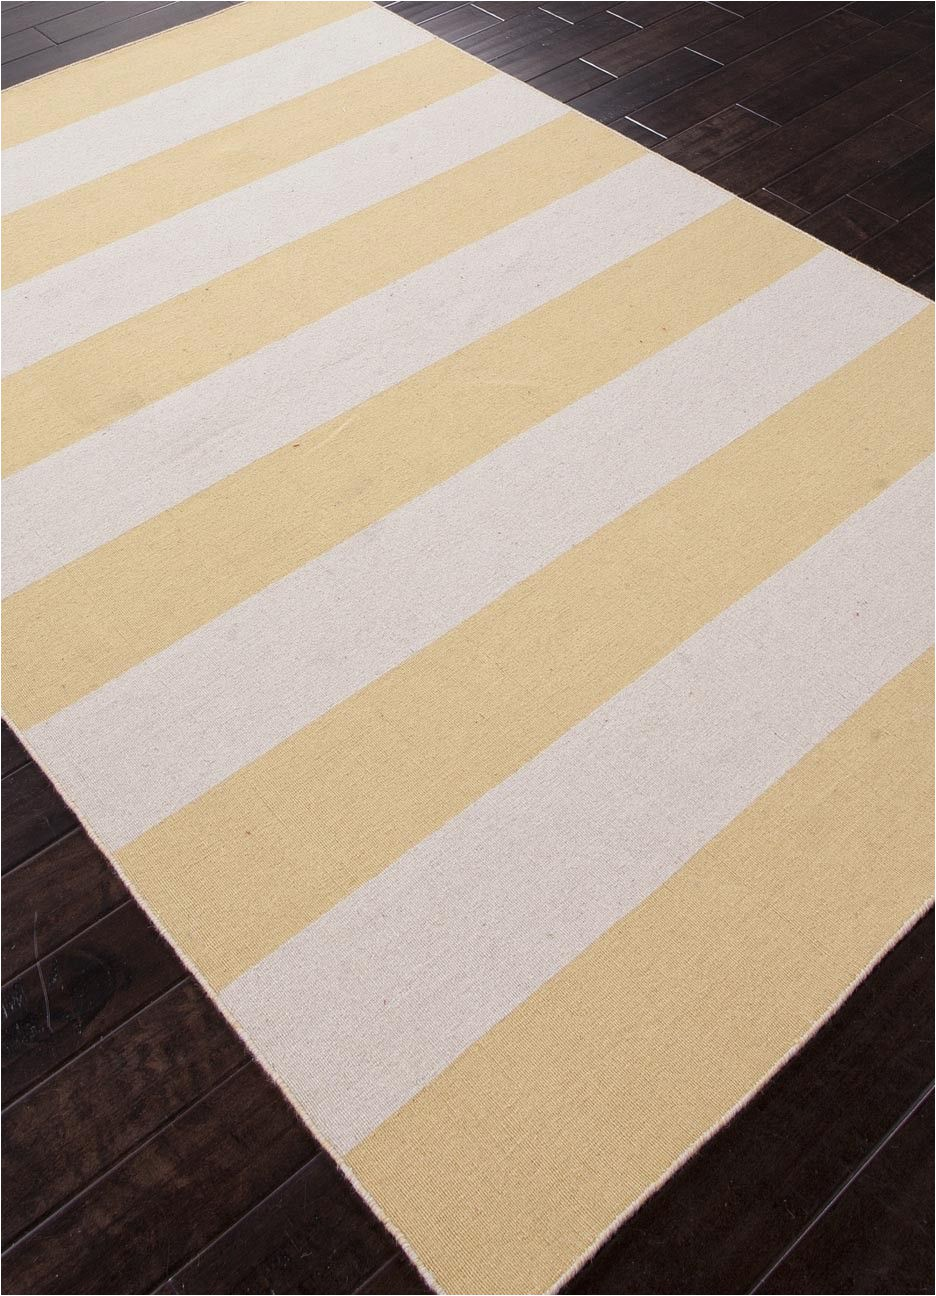 Yellow and White Striped area Rug Tierra Collection From Jaipur Cornsilk Yellow and White